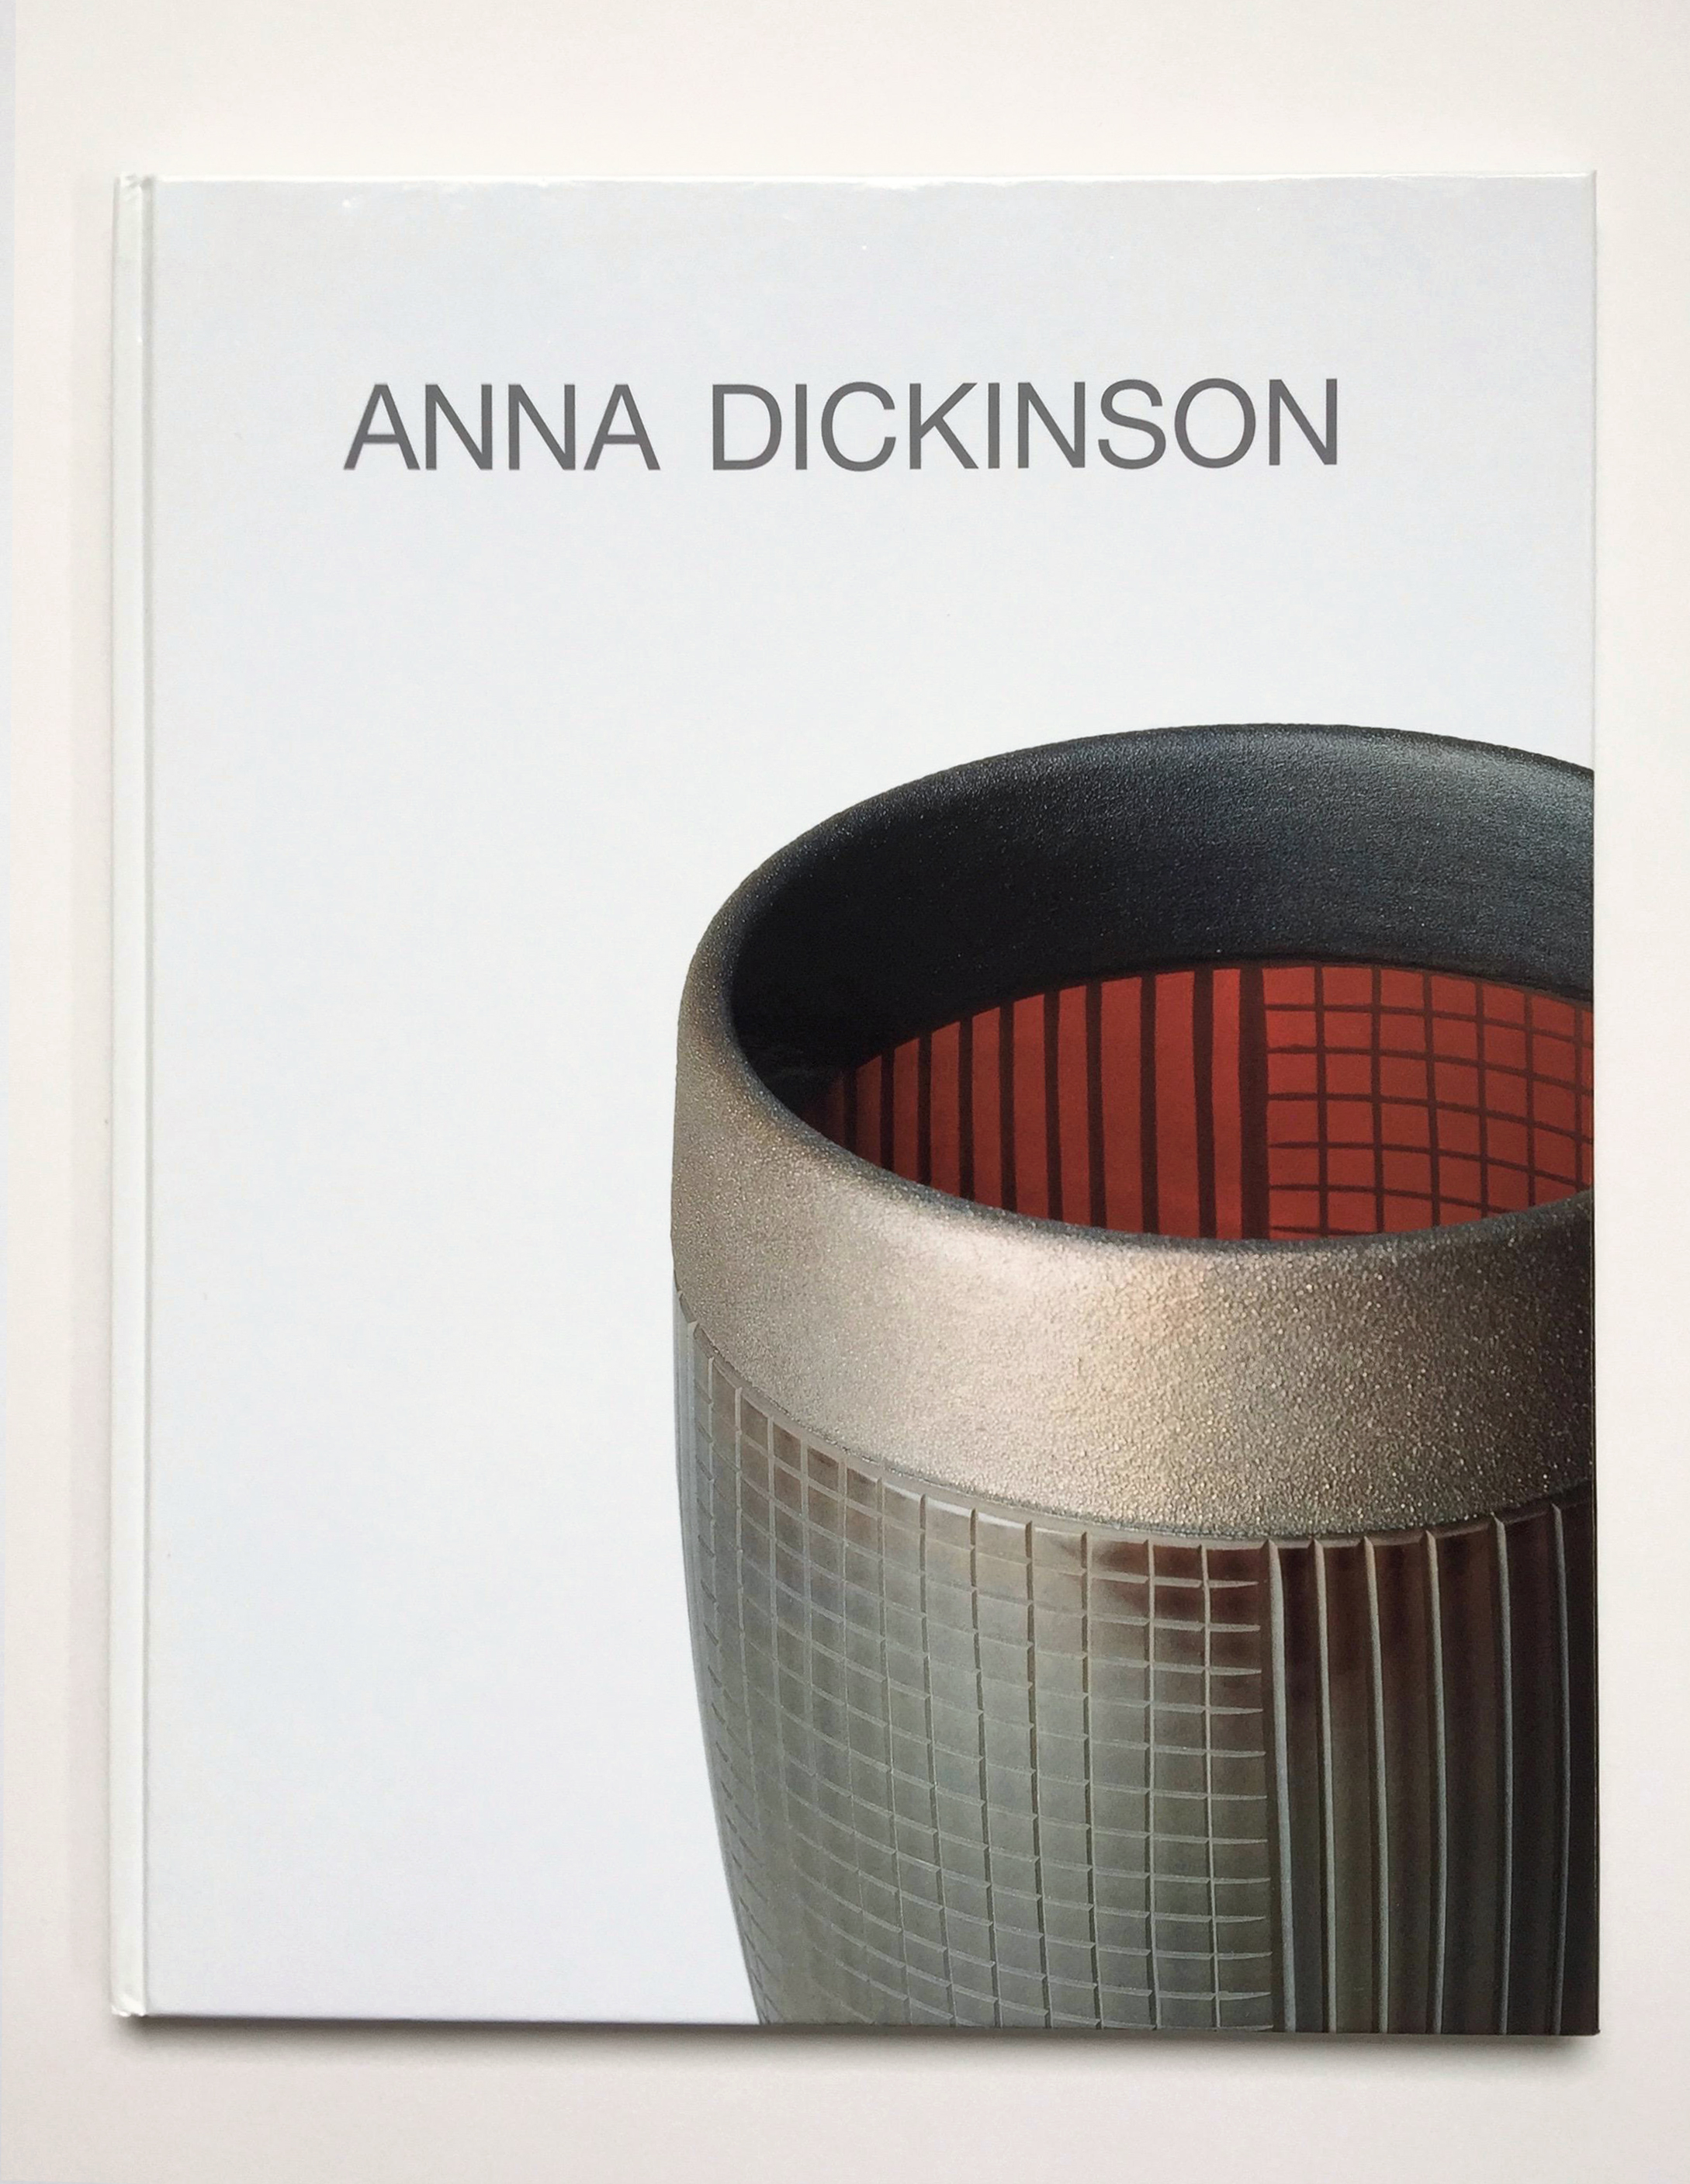 anna-dickinson-published-by-galerie-von-bartha-1997-intro-by-dan-klein.jpg